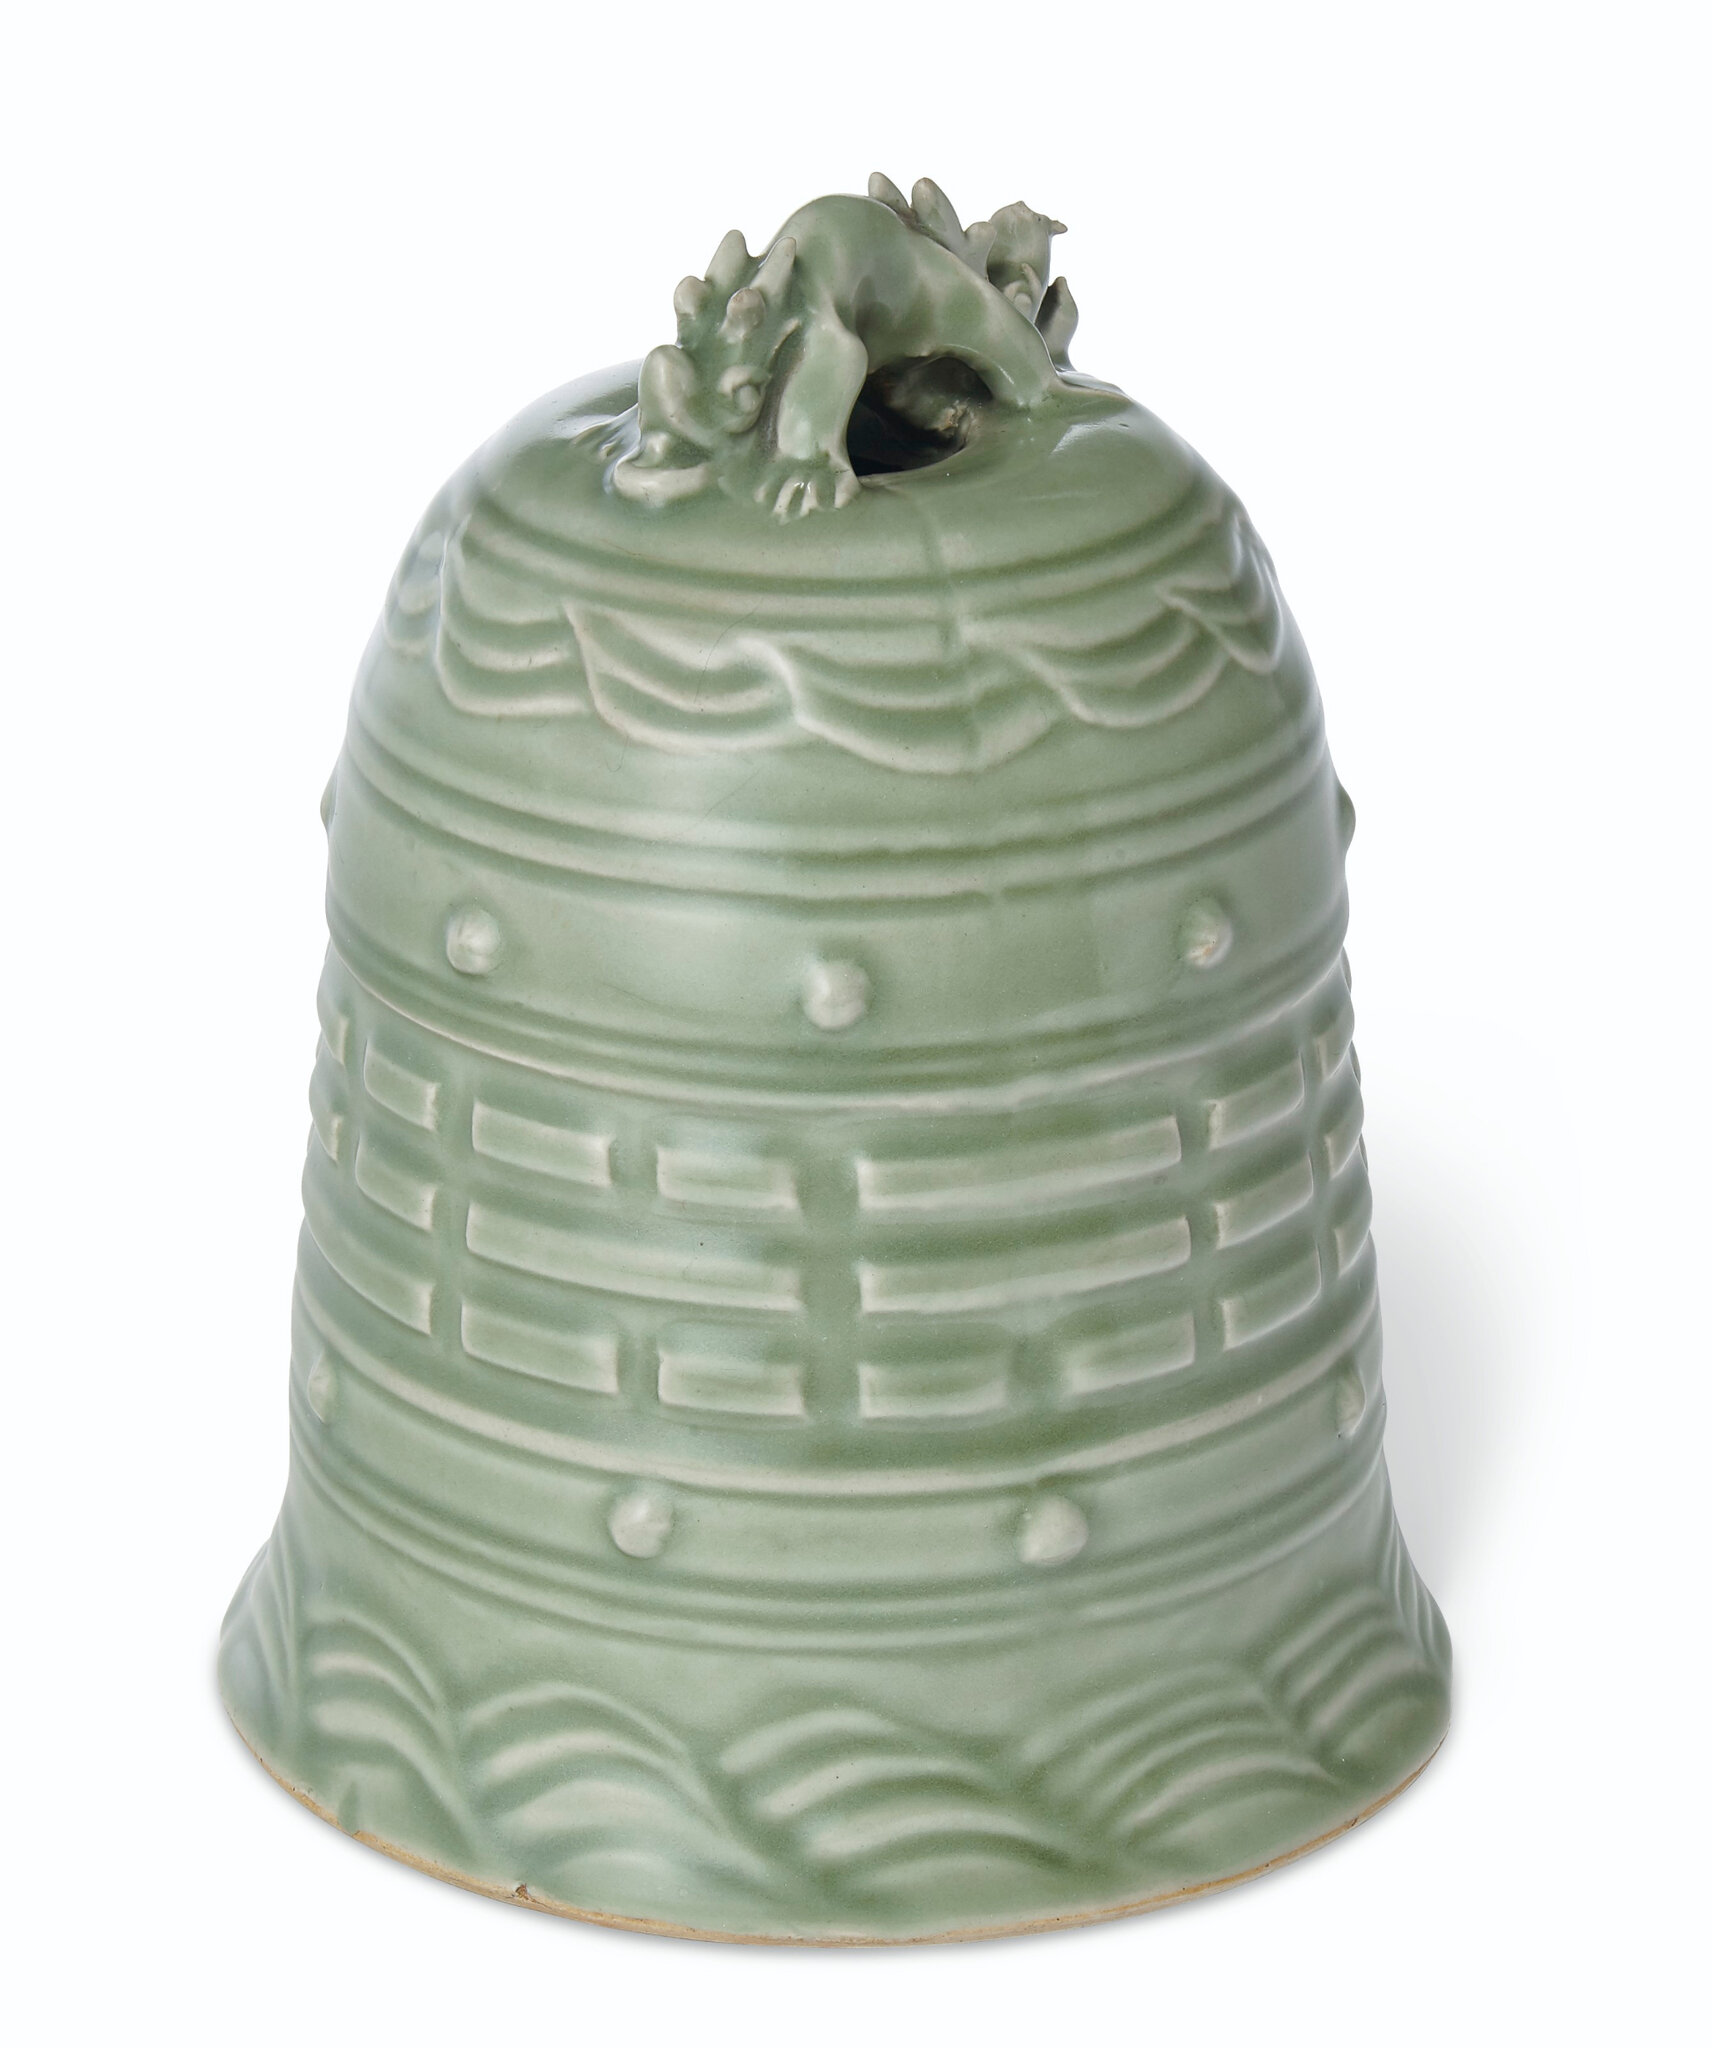 An unusual Longquan celadon bell, Yuan-Ming dynasty or later